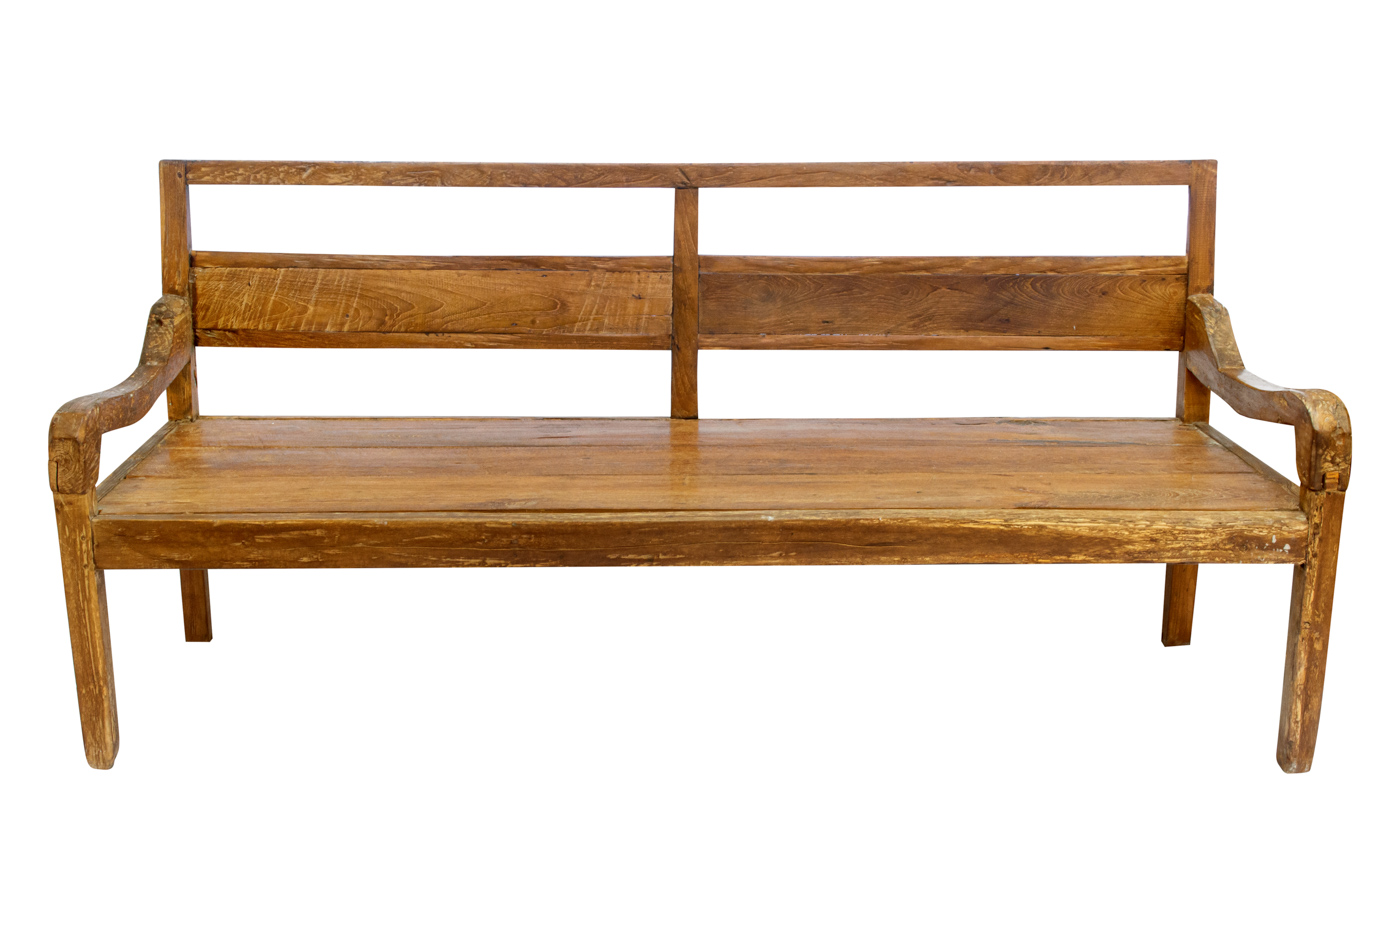 Balinese bench carved in brown wood, 90 Cm